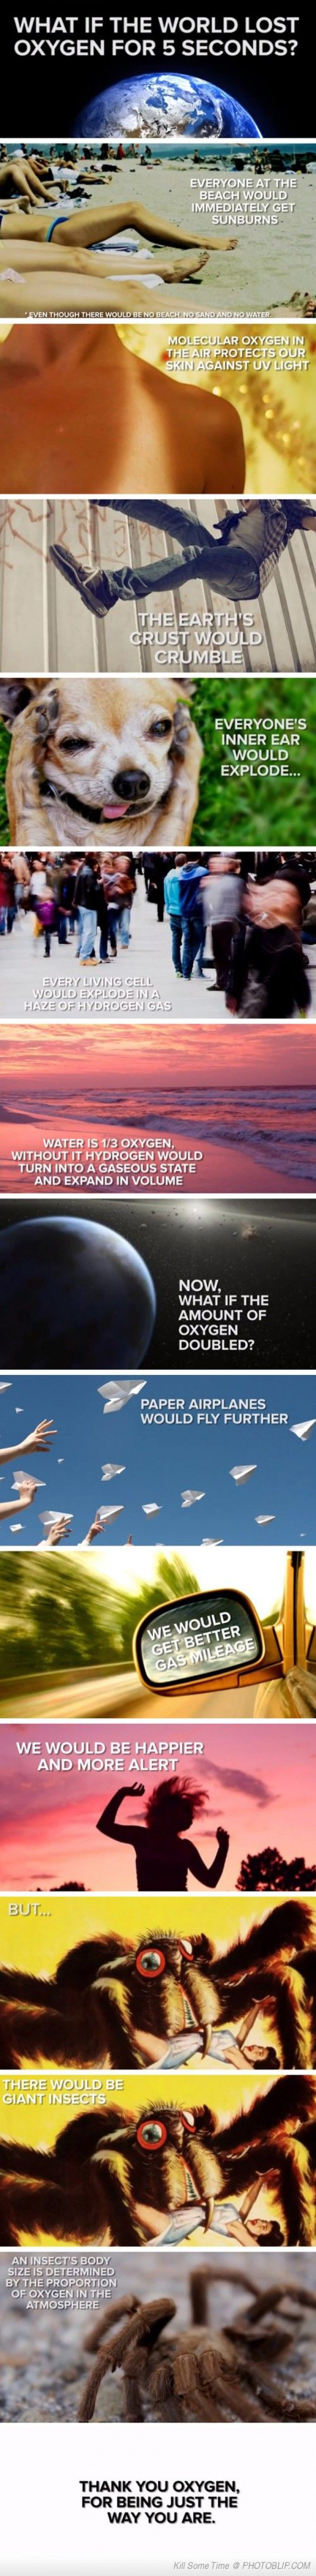 Shocking Things That Would Happen If The World Lost Oxygen For Only 5 Seconds